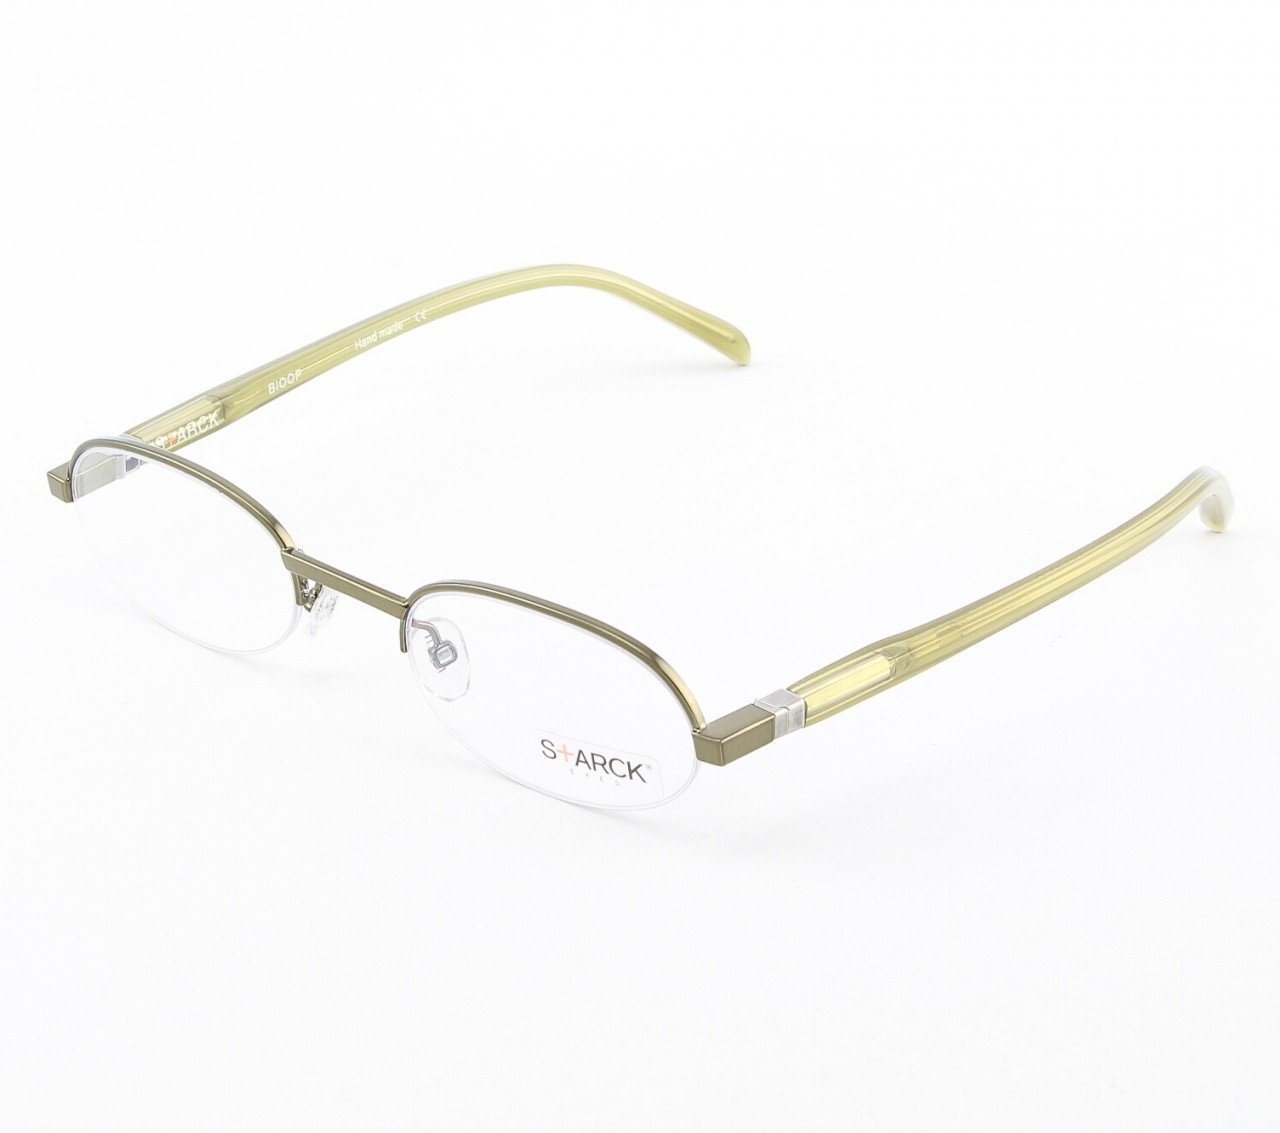 Starck Eyeglasses P0107 Col. 11 Metallic Chartreuse Green with Clear Lenses